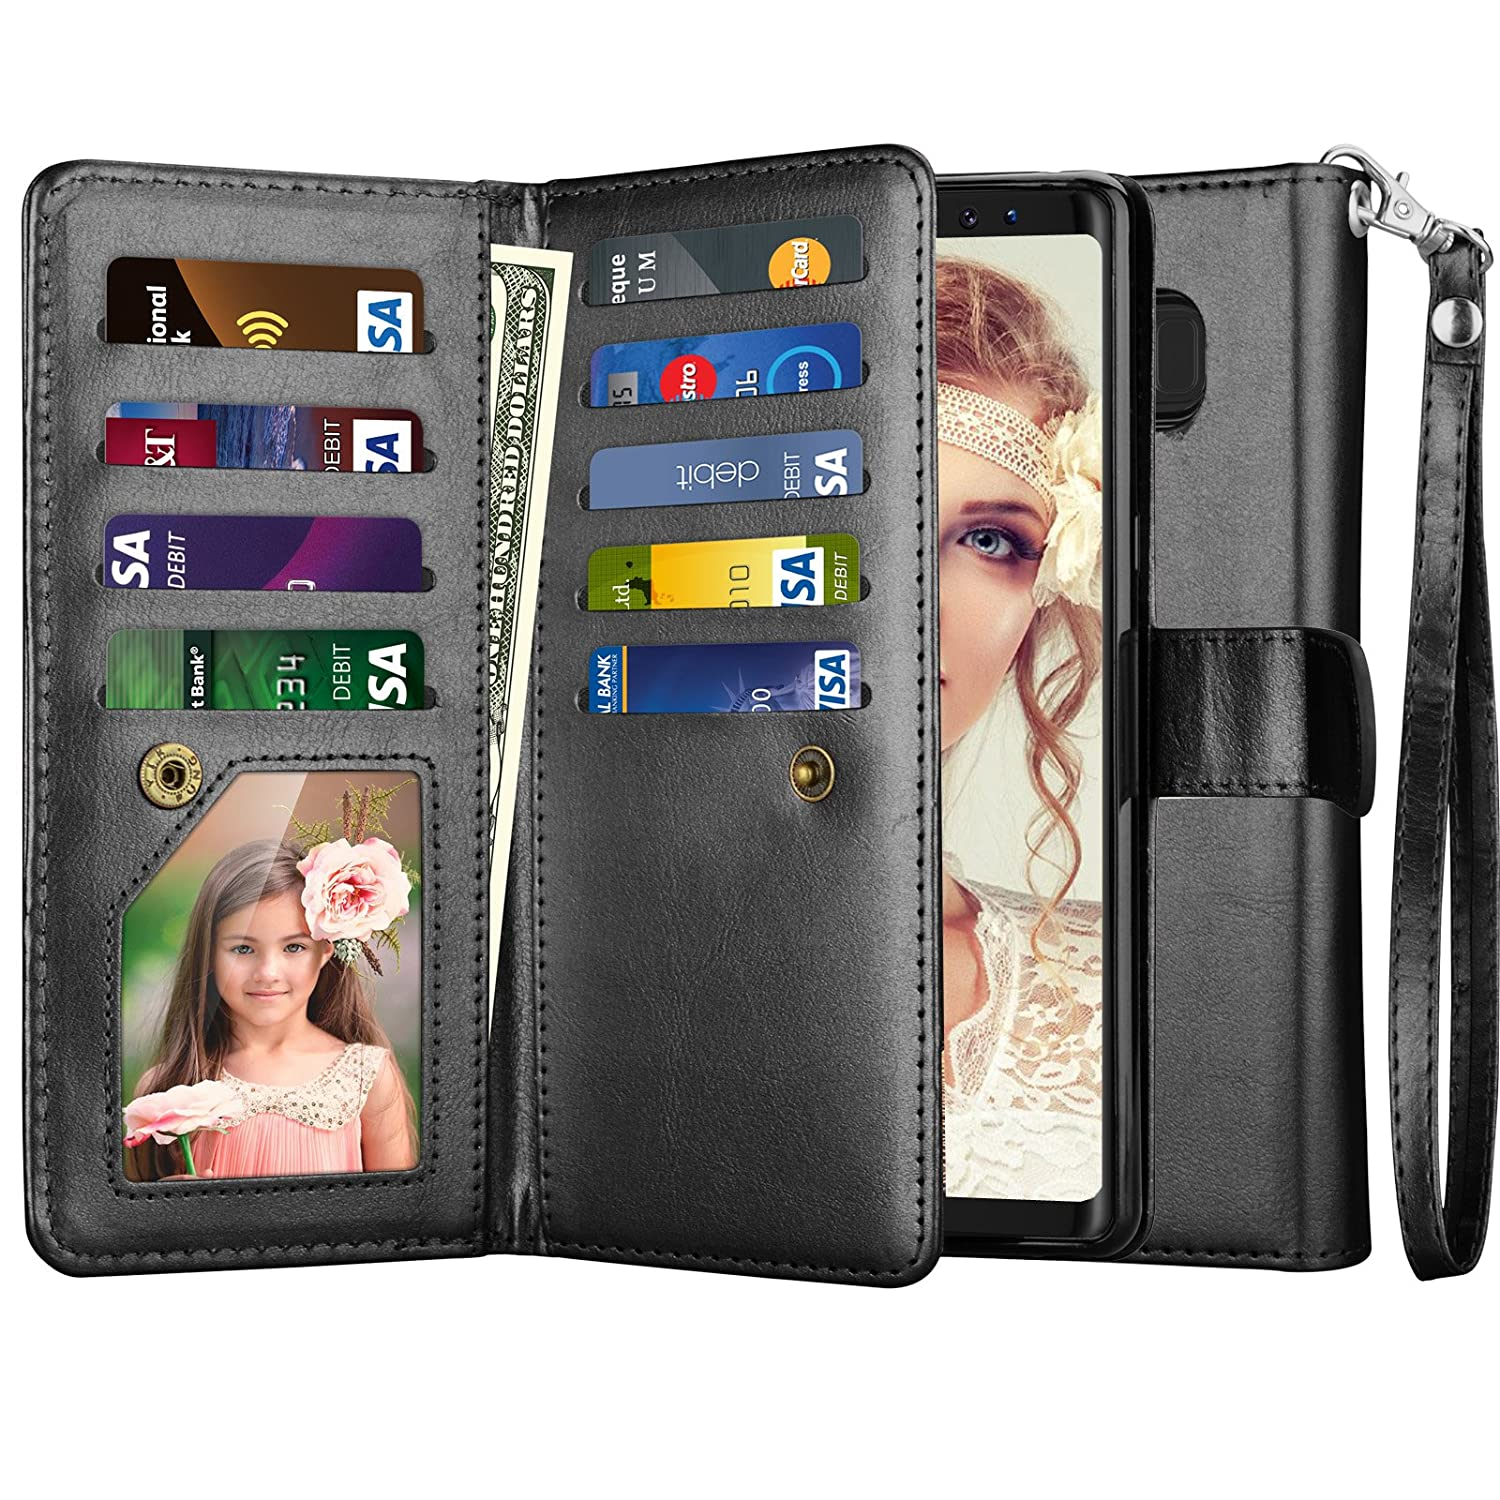 454f31af6300 Njjex for Galaxy Note 8 Case, for Note 8 Wallet Case, PU Leather [9 Card  Slots] ID Credit Folio Flip Cover [Detachable] [Kickstand] Magnetic Phone  ...